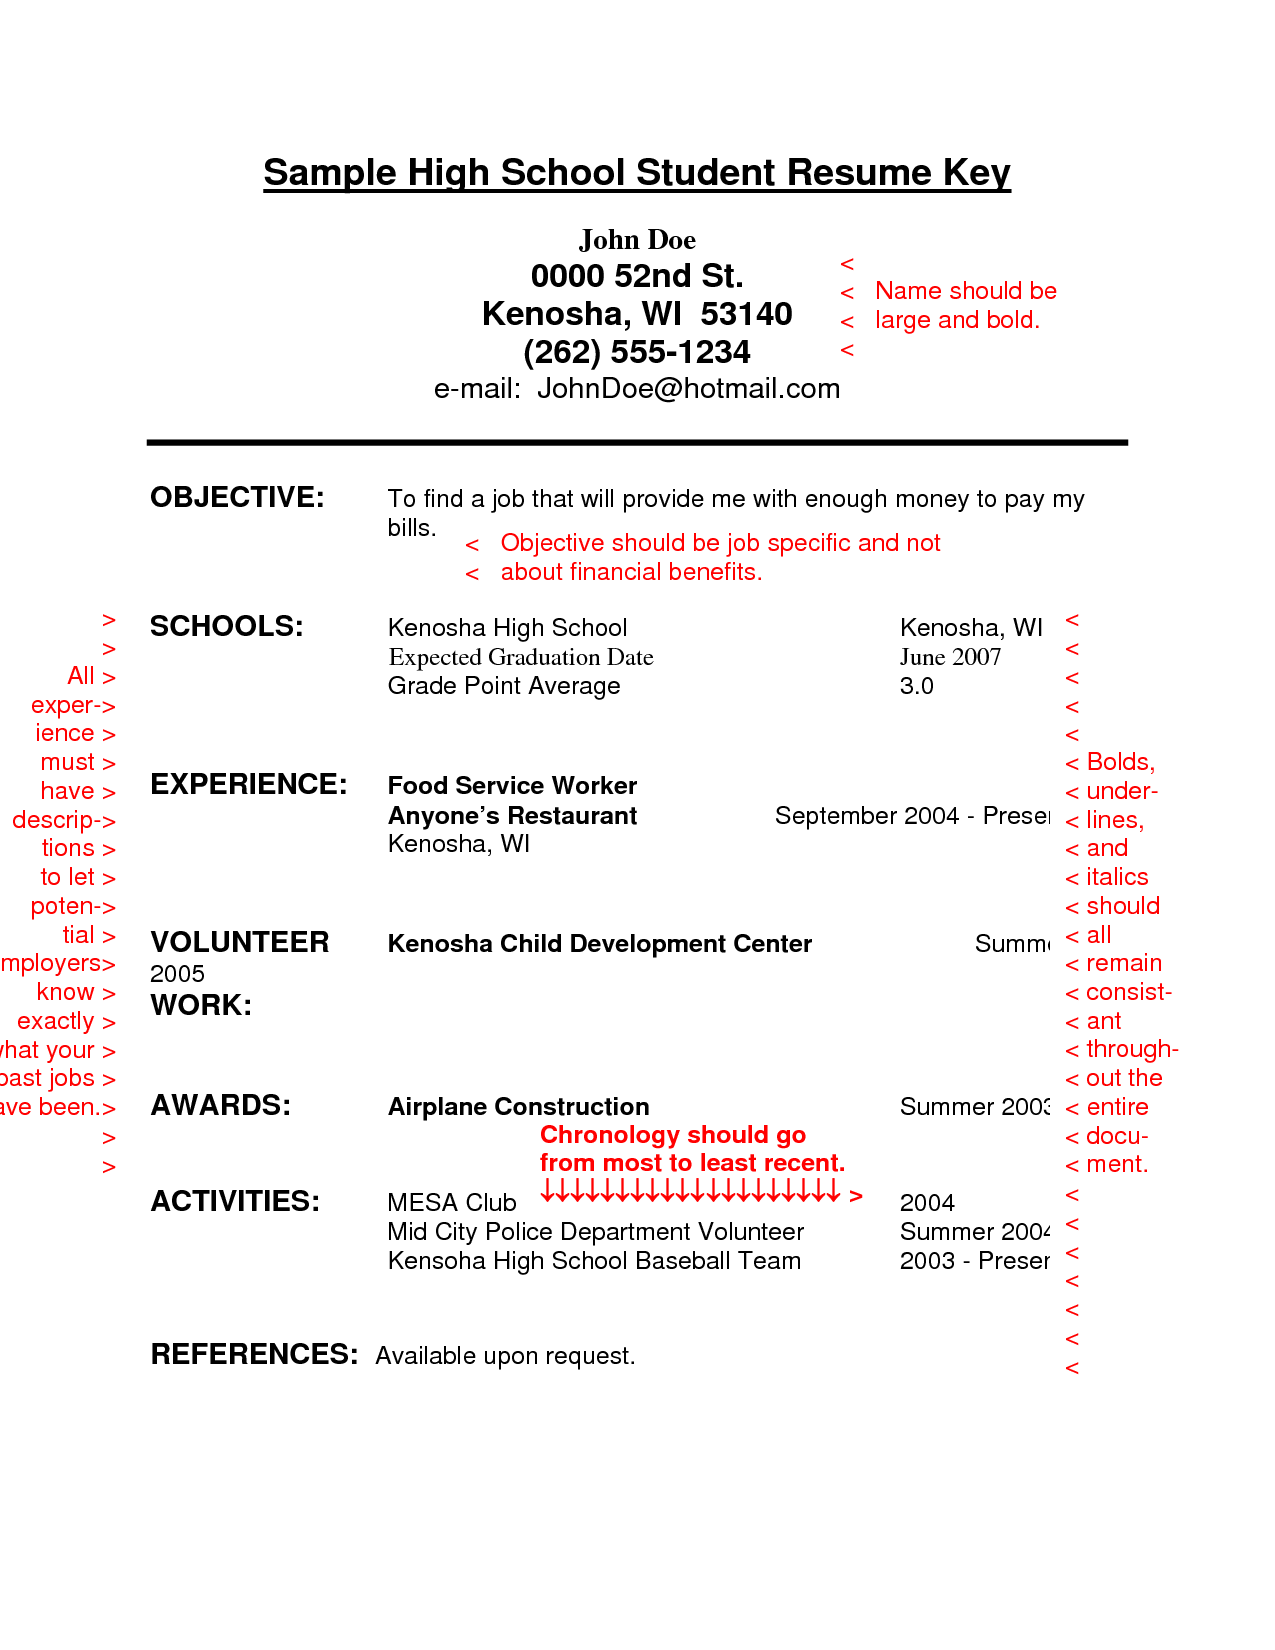 Resume Templates For High School Students Resume Sample For High School Students With No Experience  Http